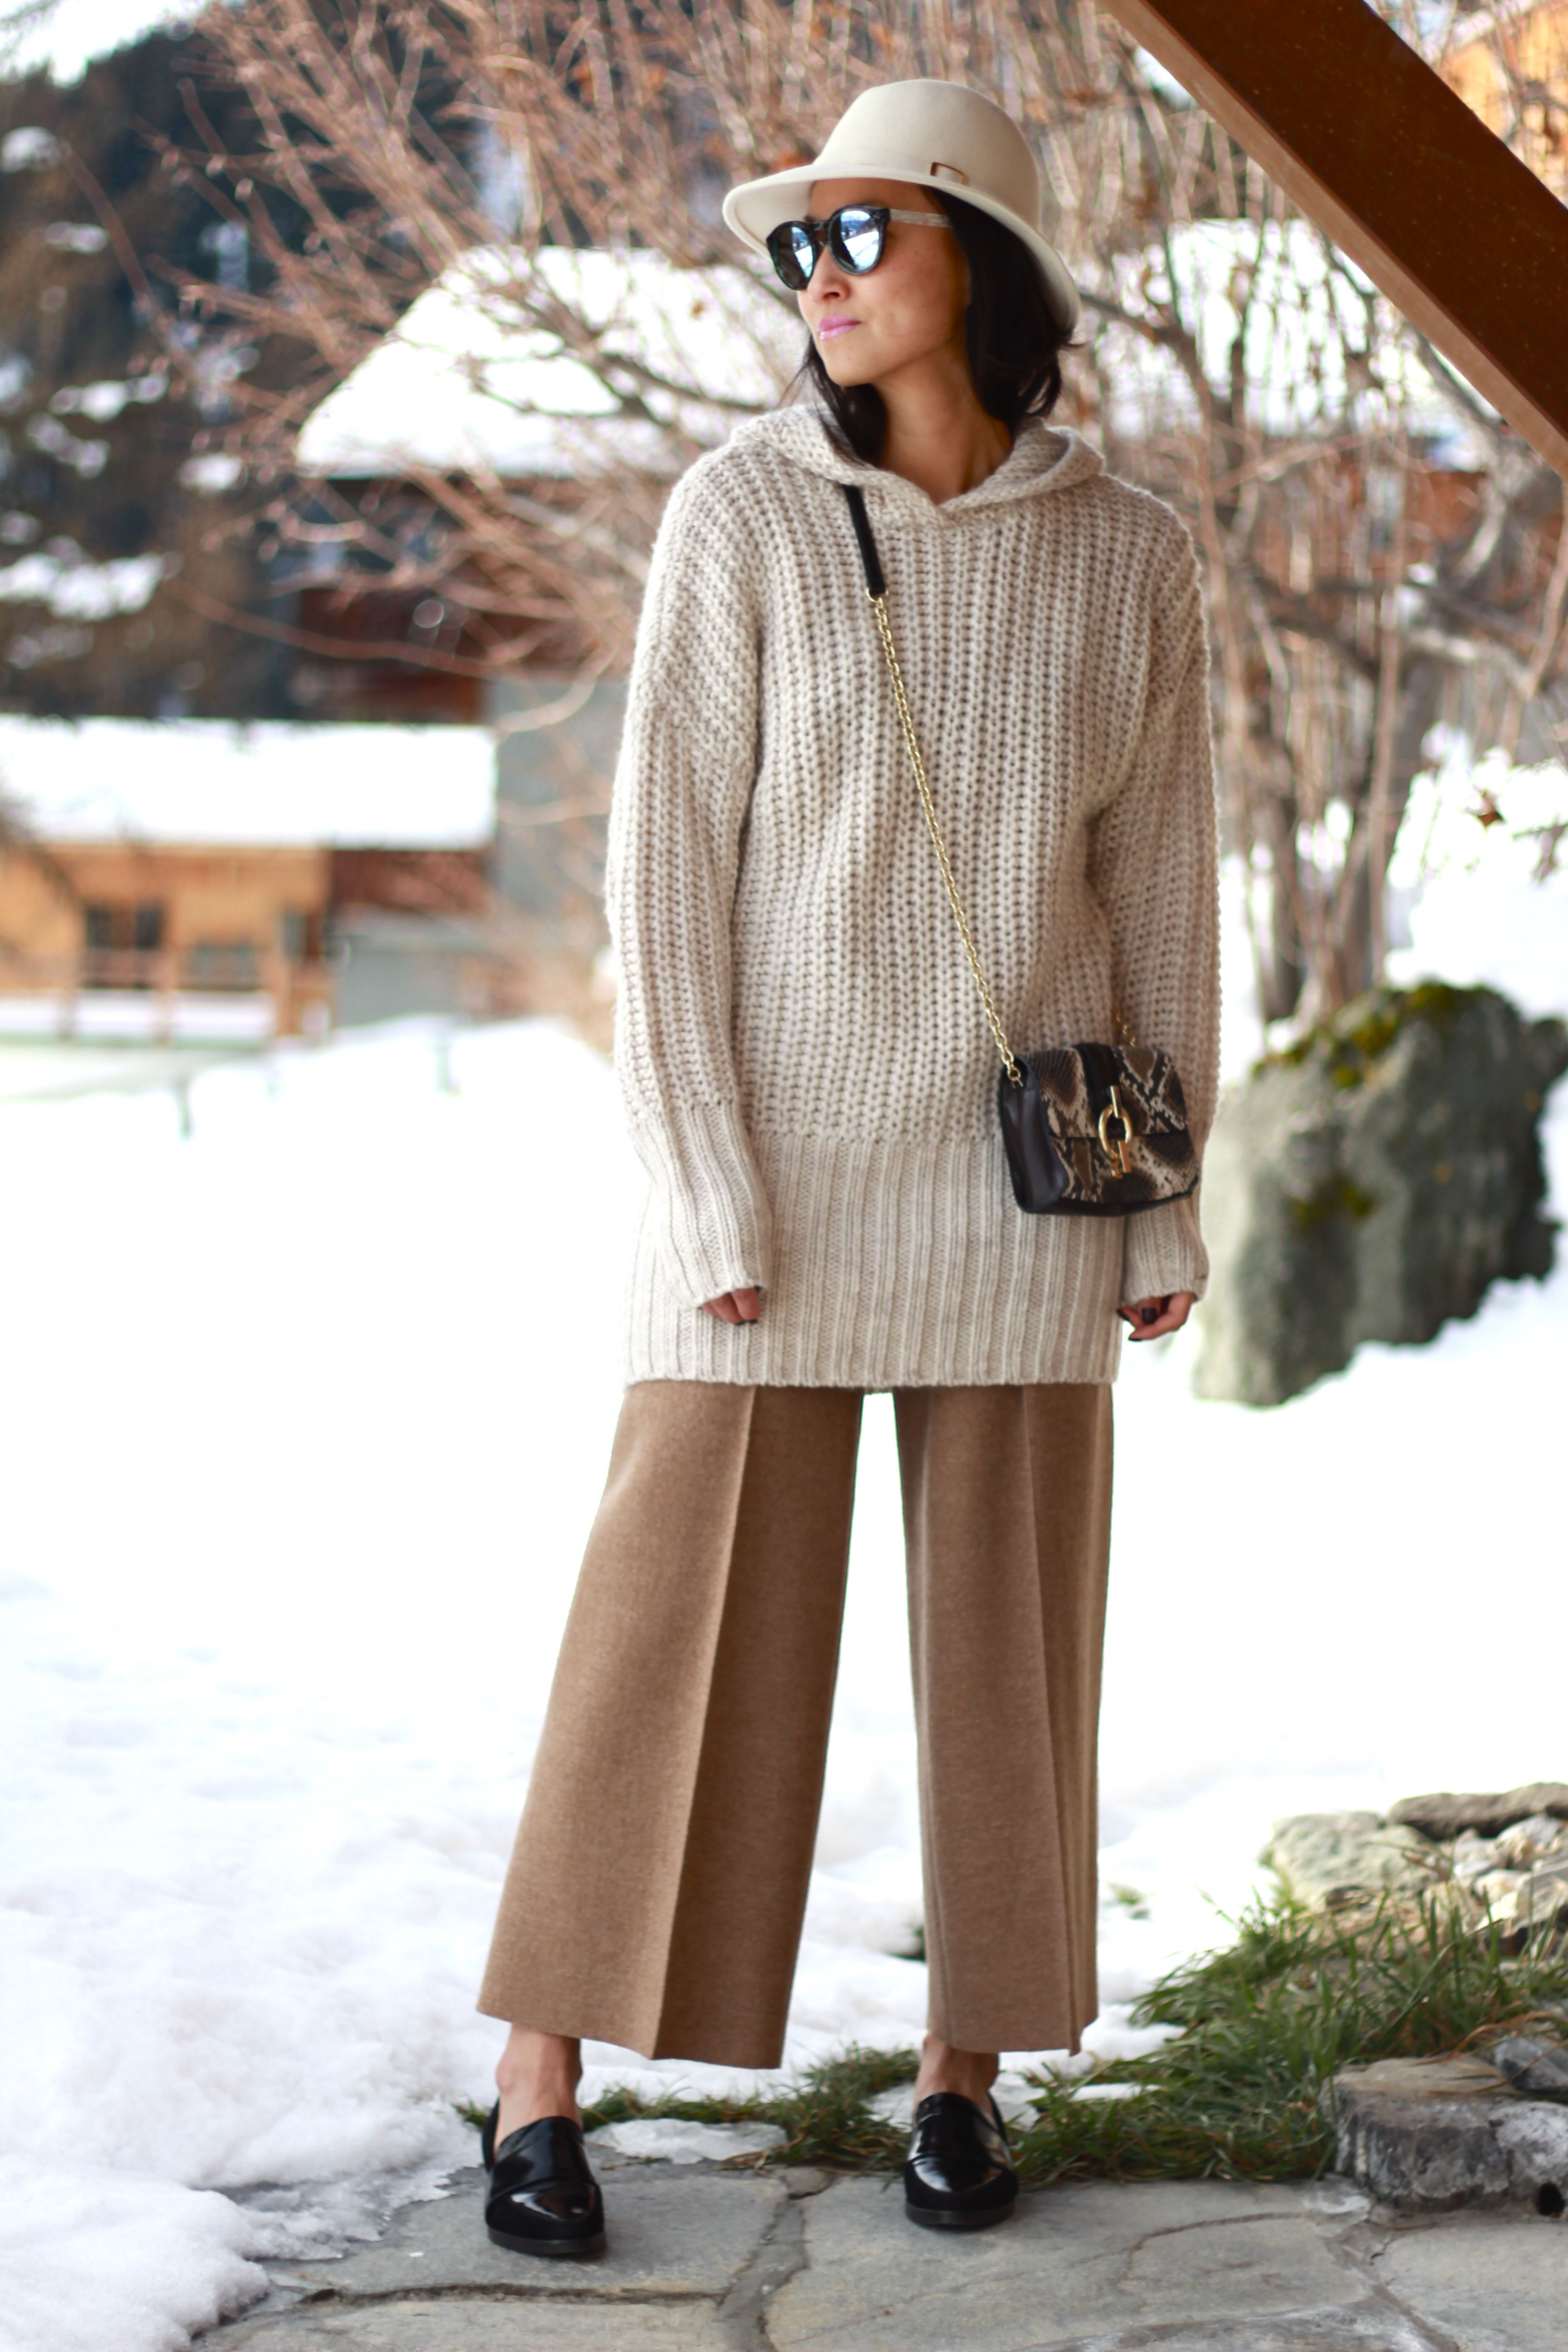 Shop this look on Lookastic:  http://lookastic.com/women/looks/hat-sunglasses-oversized-sweater-crossbody-bag-wide-leg-pants-loafers/7909  — White Wool Hat  — White and Black Sunglasses  — Beige Knit Oversized Sweater  — Black Snake Leather Crossbody Bag  — Tan Wide Leg Pants  — Black Leather Loafers